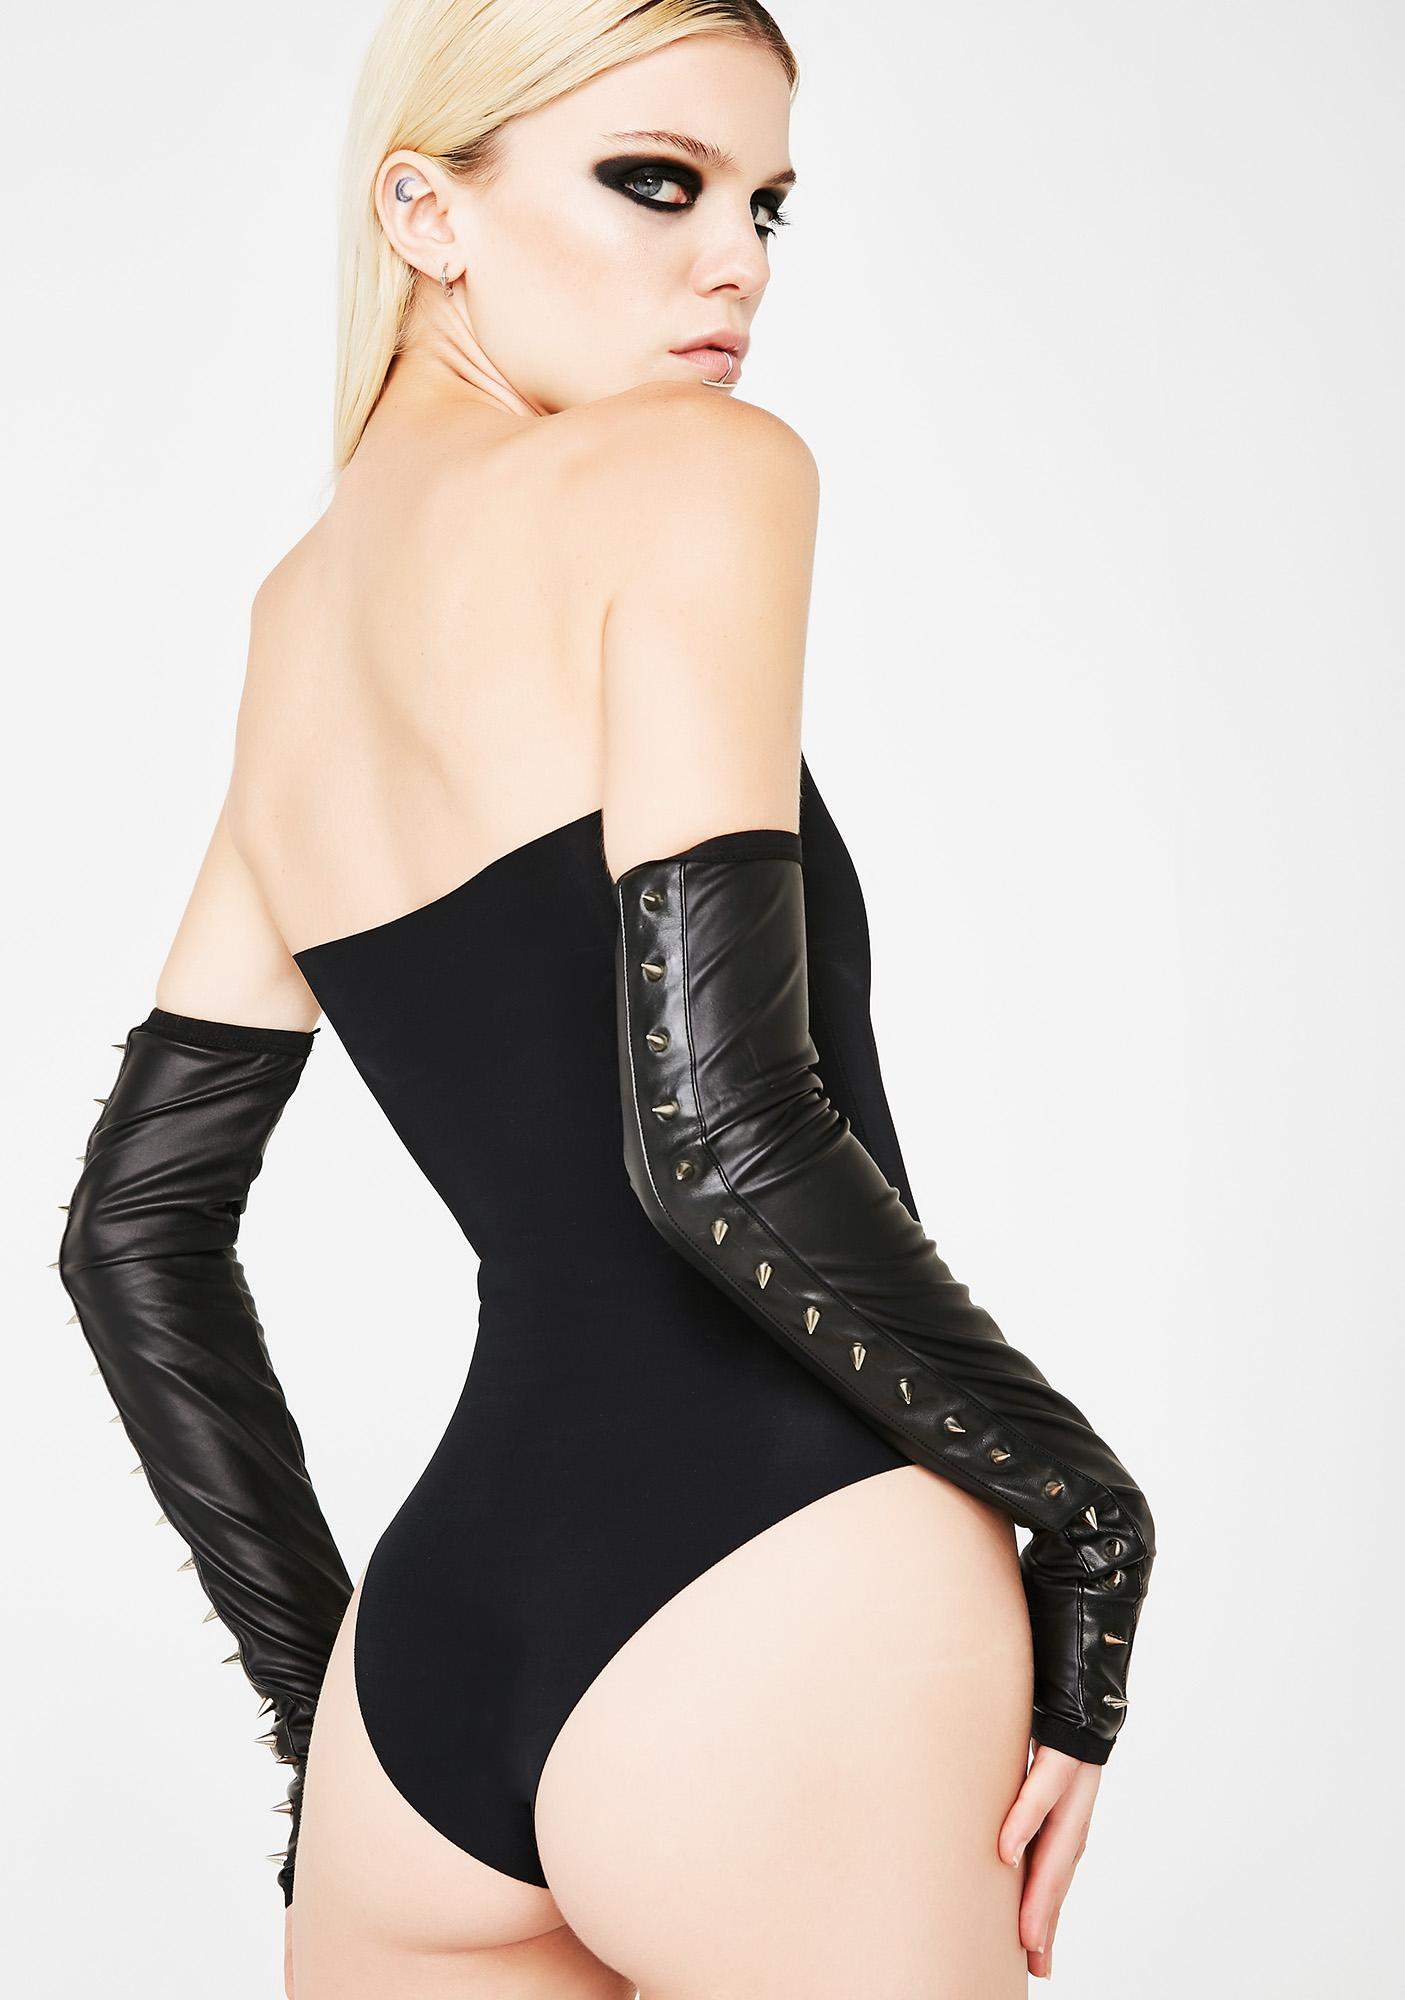 Kiki Riki Run The Show Strapless Bodysuit